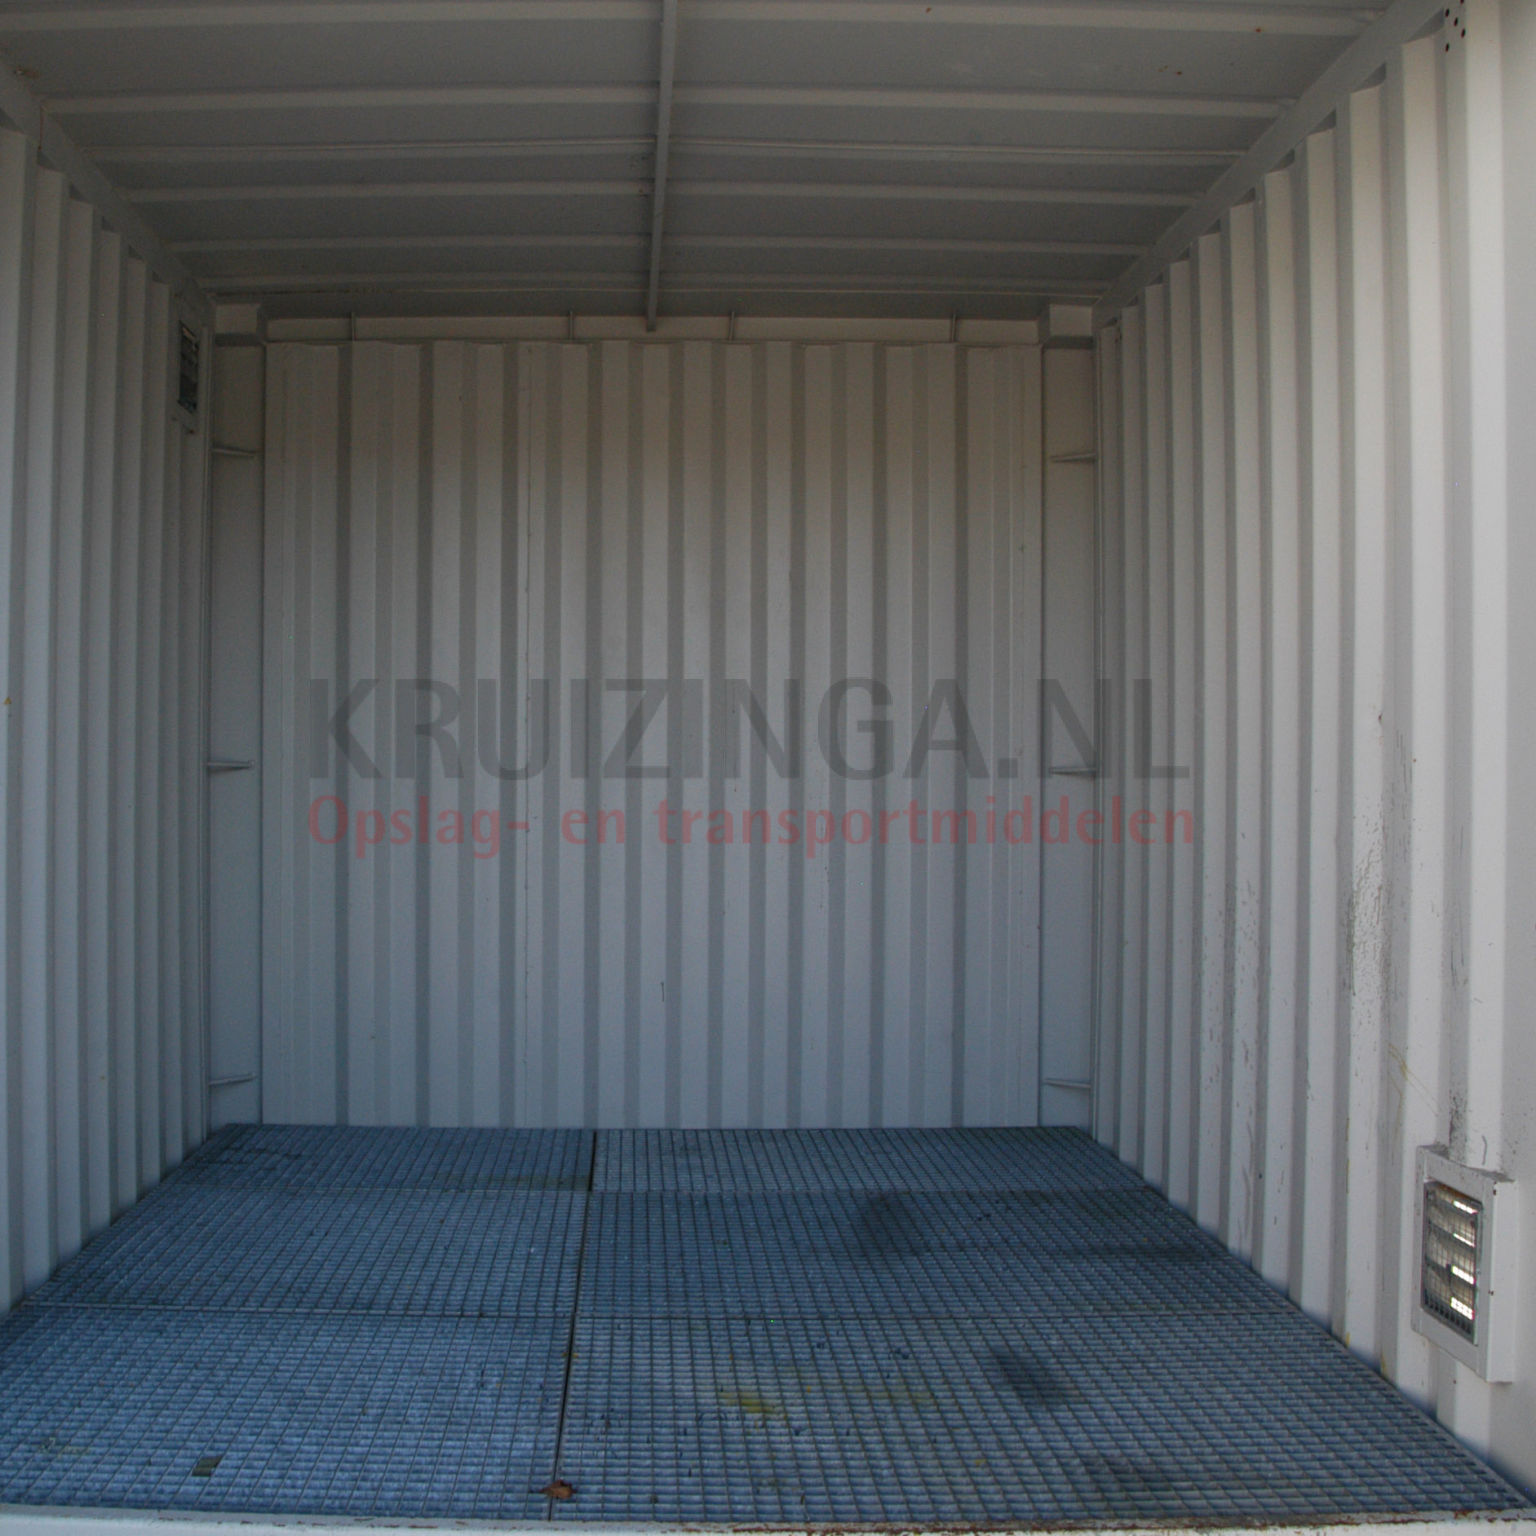 container umweltcontainer 10 fu gebraucht ab 4274 25 frei haus. Black Bedroom Furniture Sets. Home Design Ideas